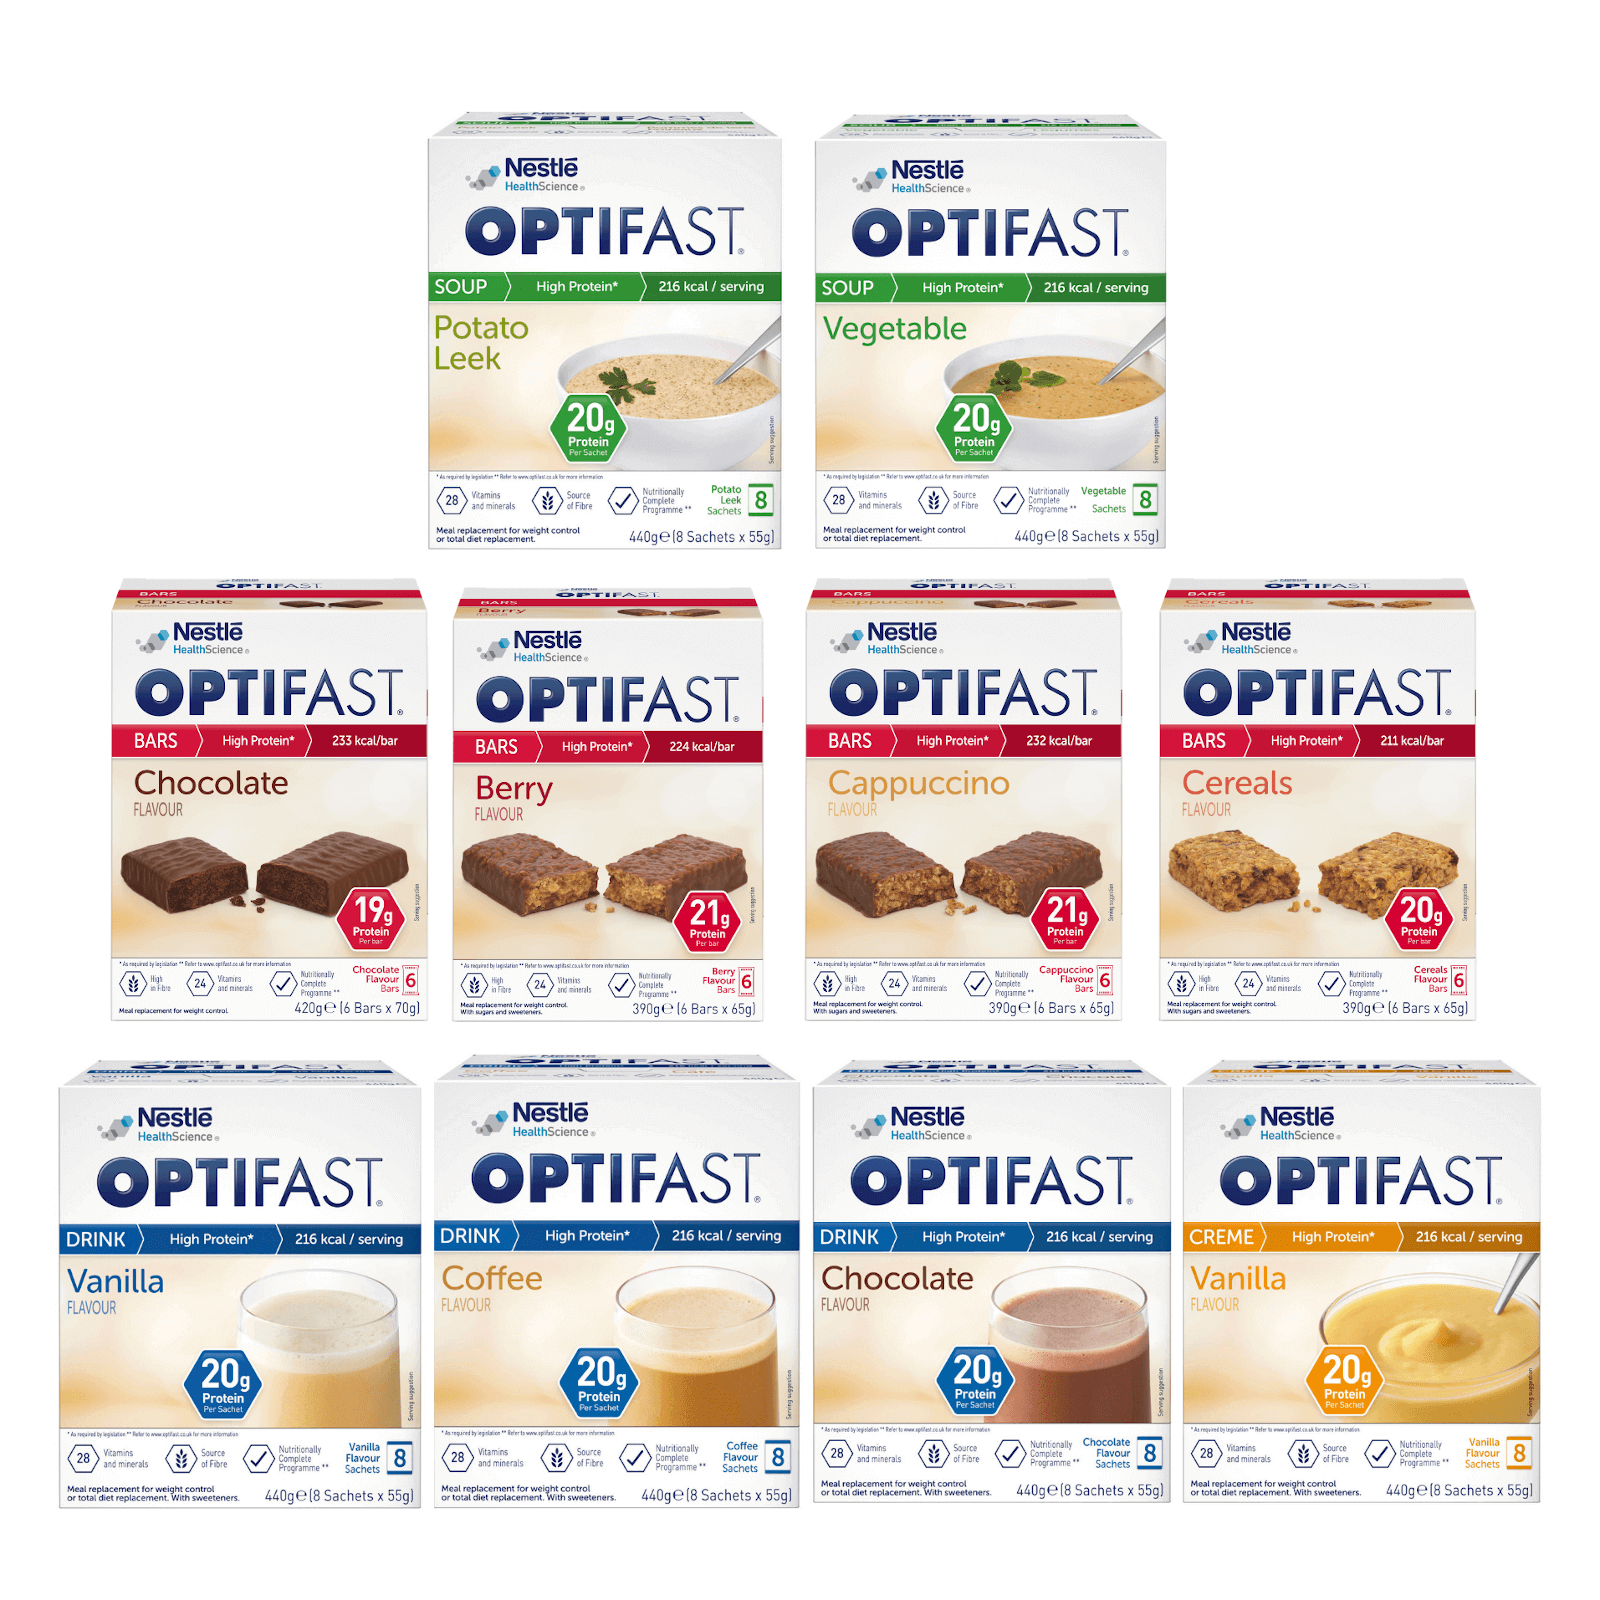 Image of the OPTIFAST soups